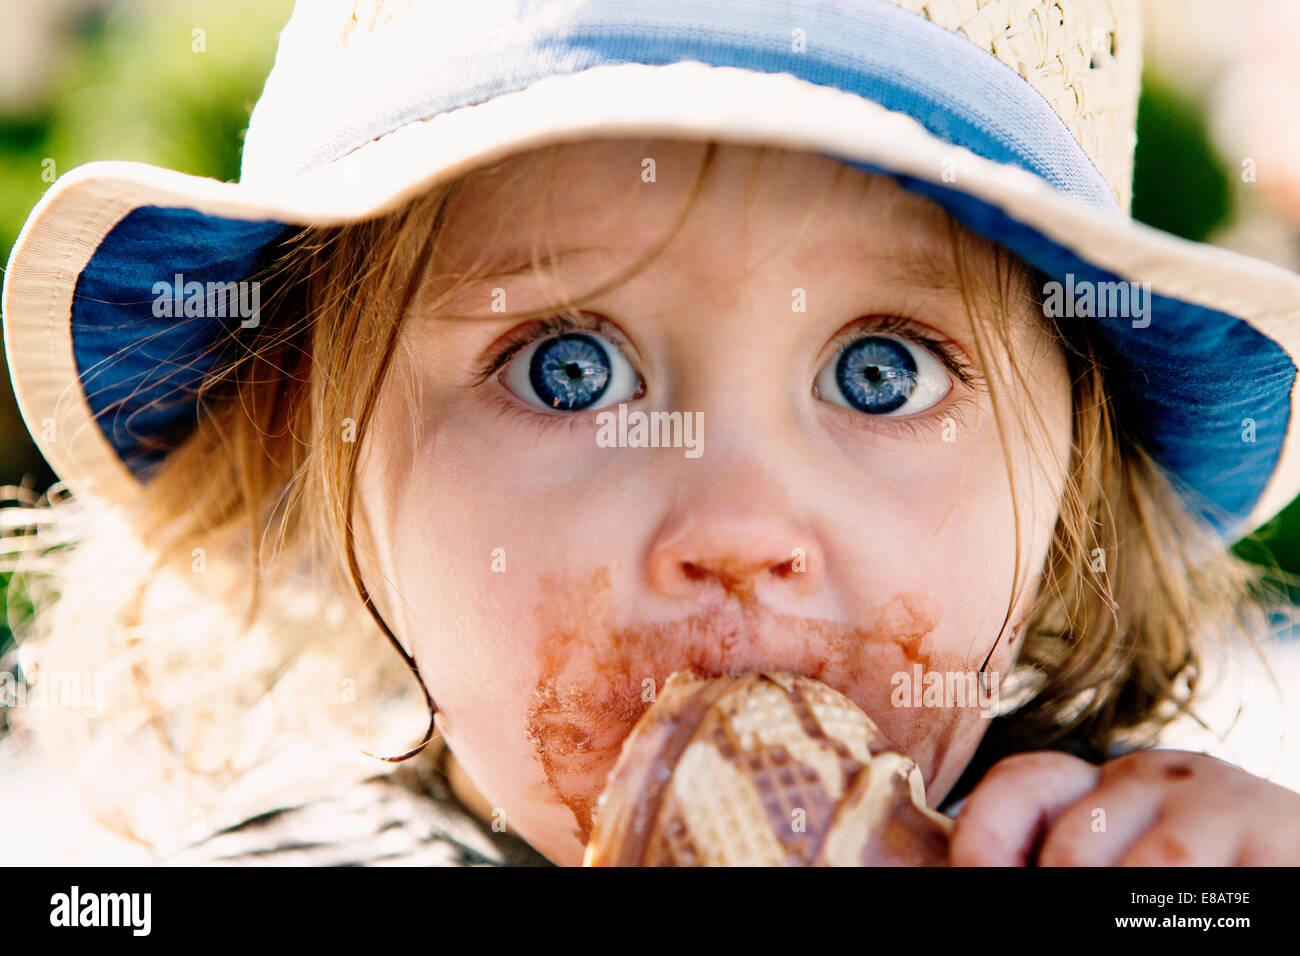 Young girl eating ice cream cone - Stock Image